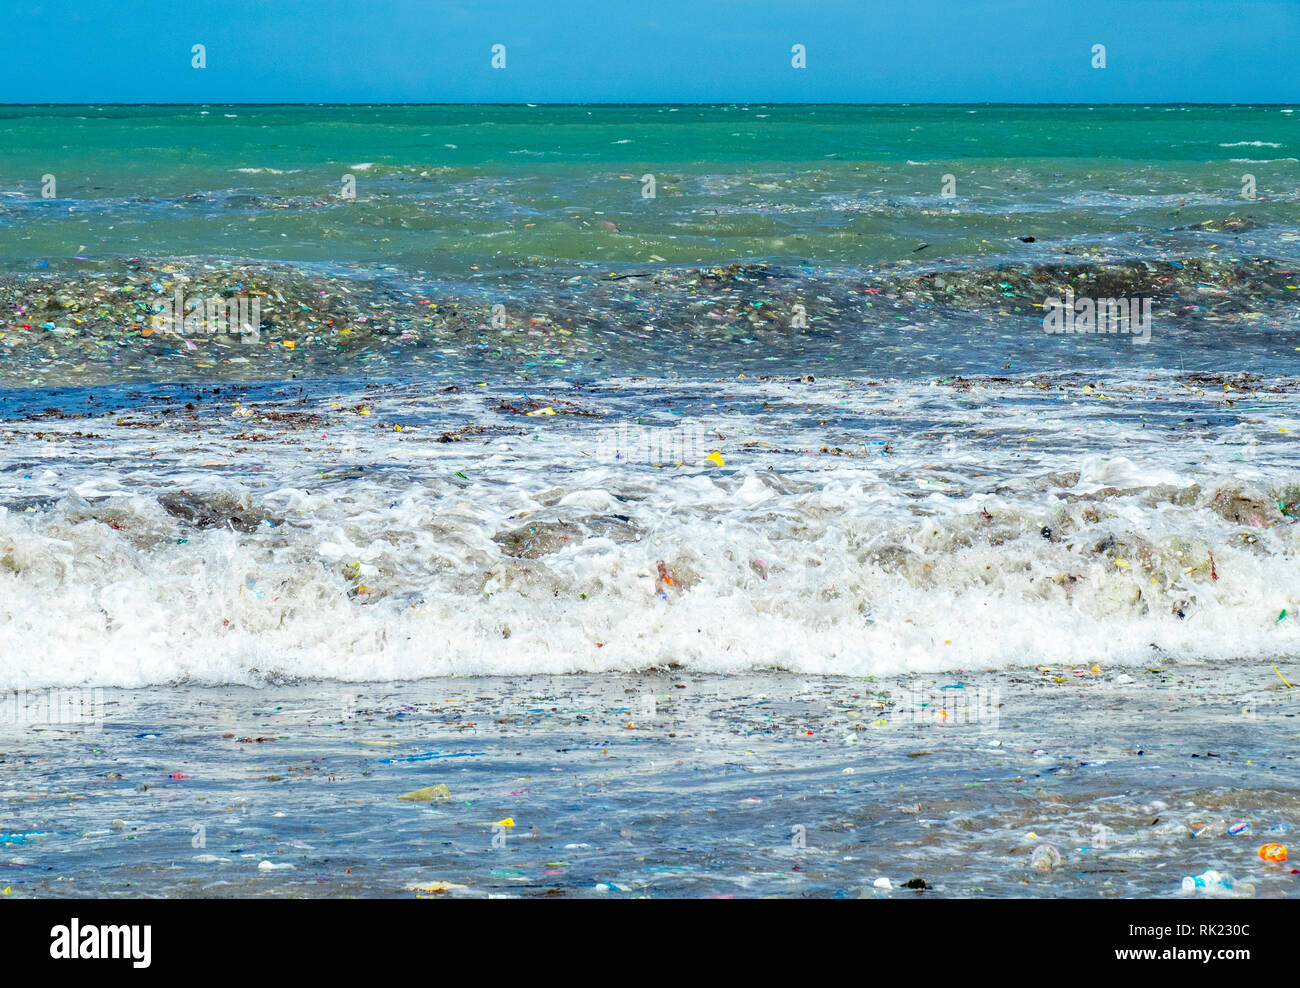 Pollution of plastic bottles, cups, straws and other litter washing up on the beach at Jimbaran Bay, Bali Indonesia. - Stock Image